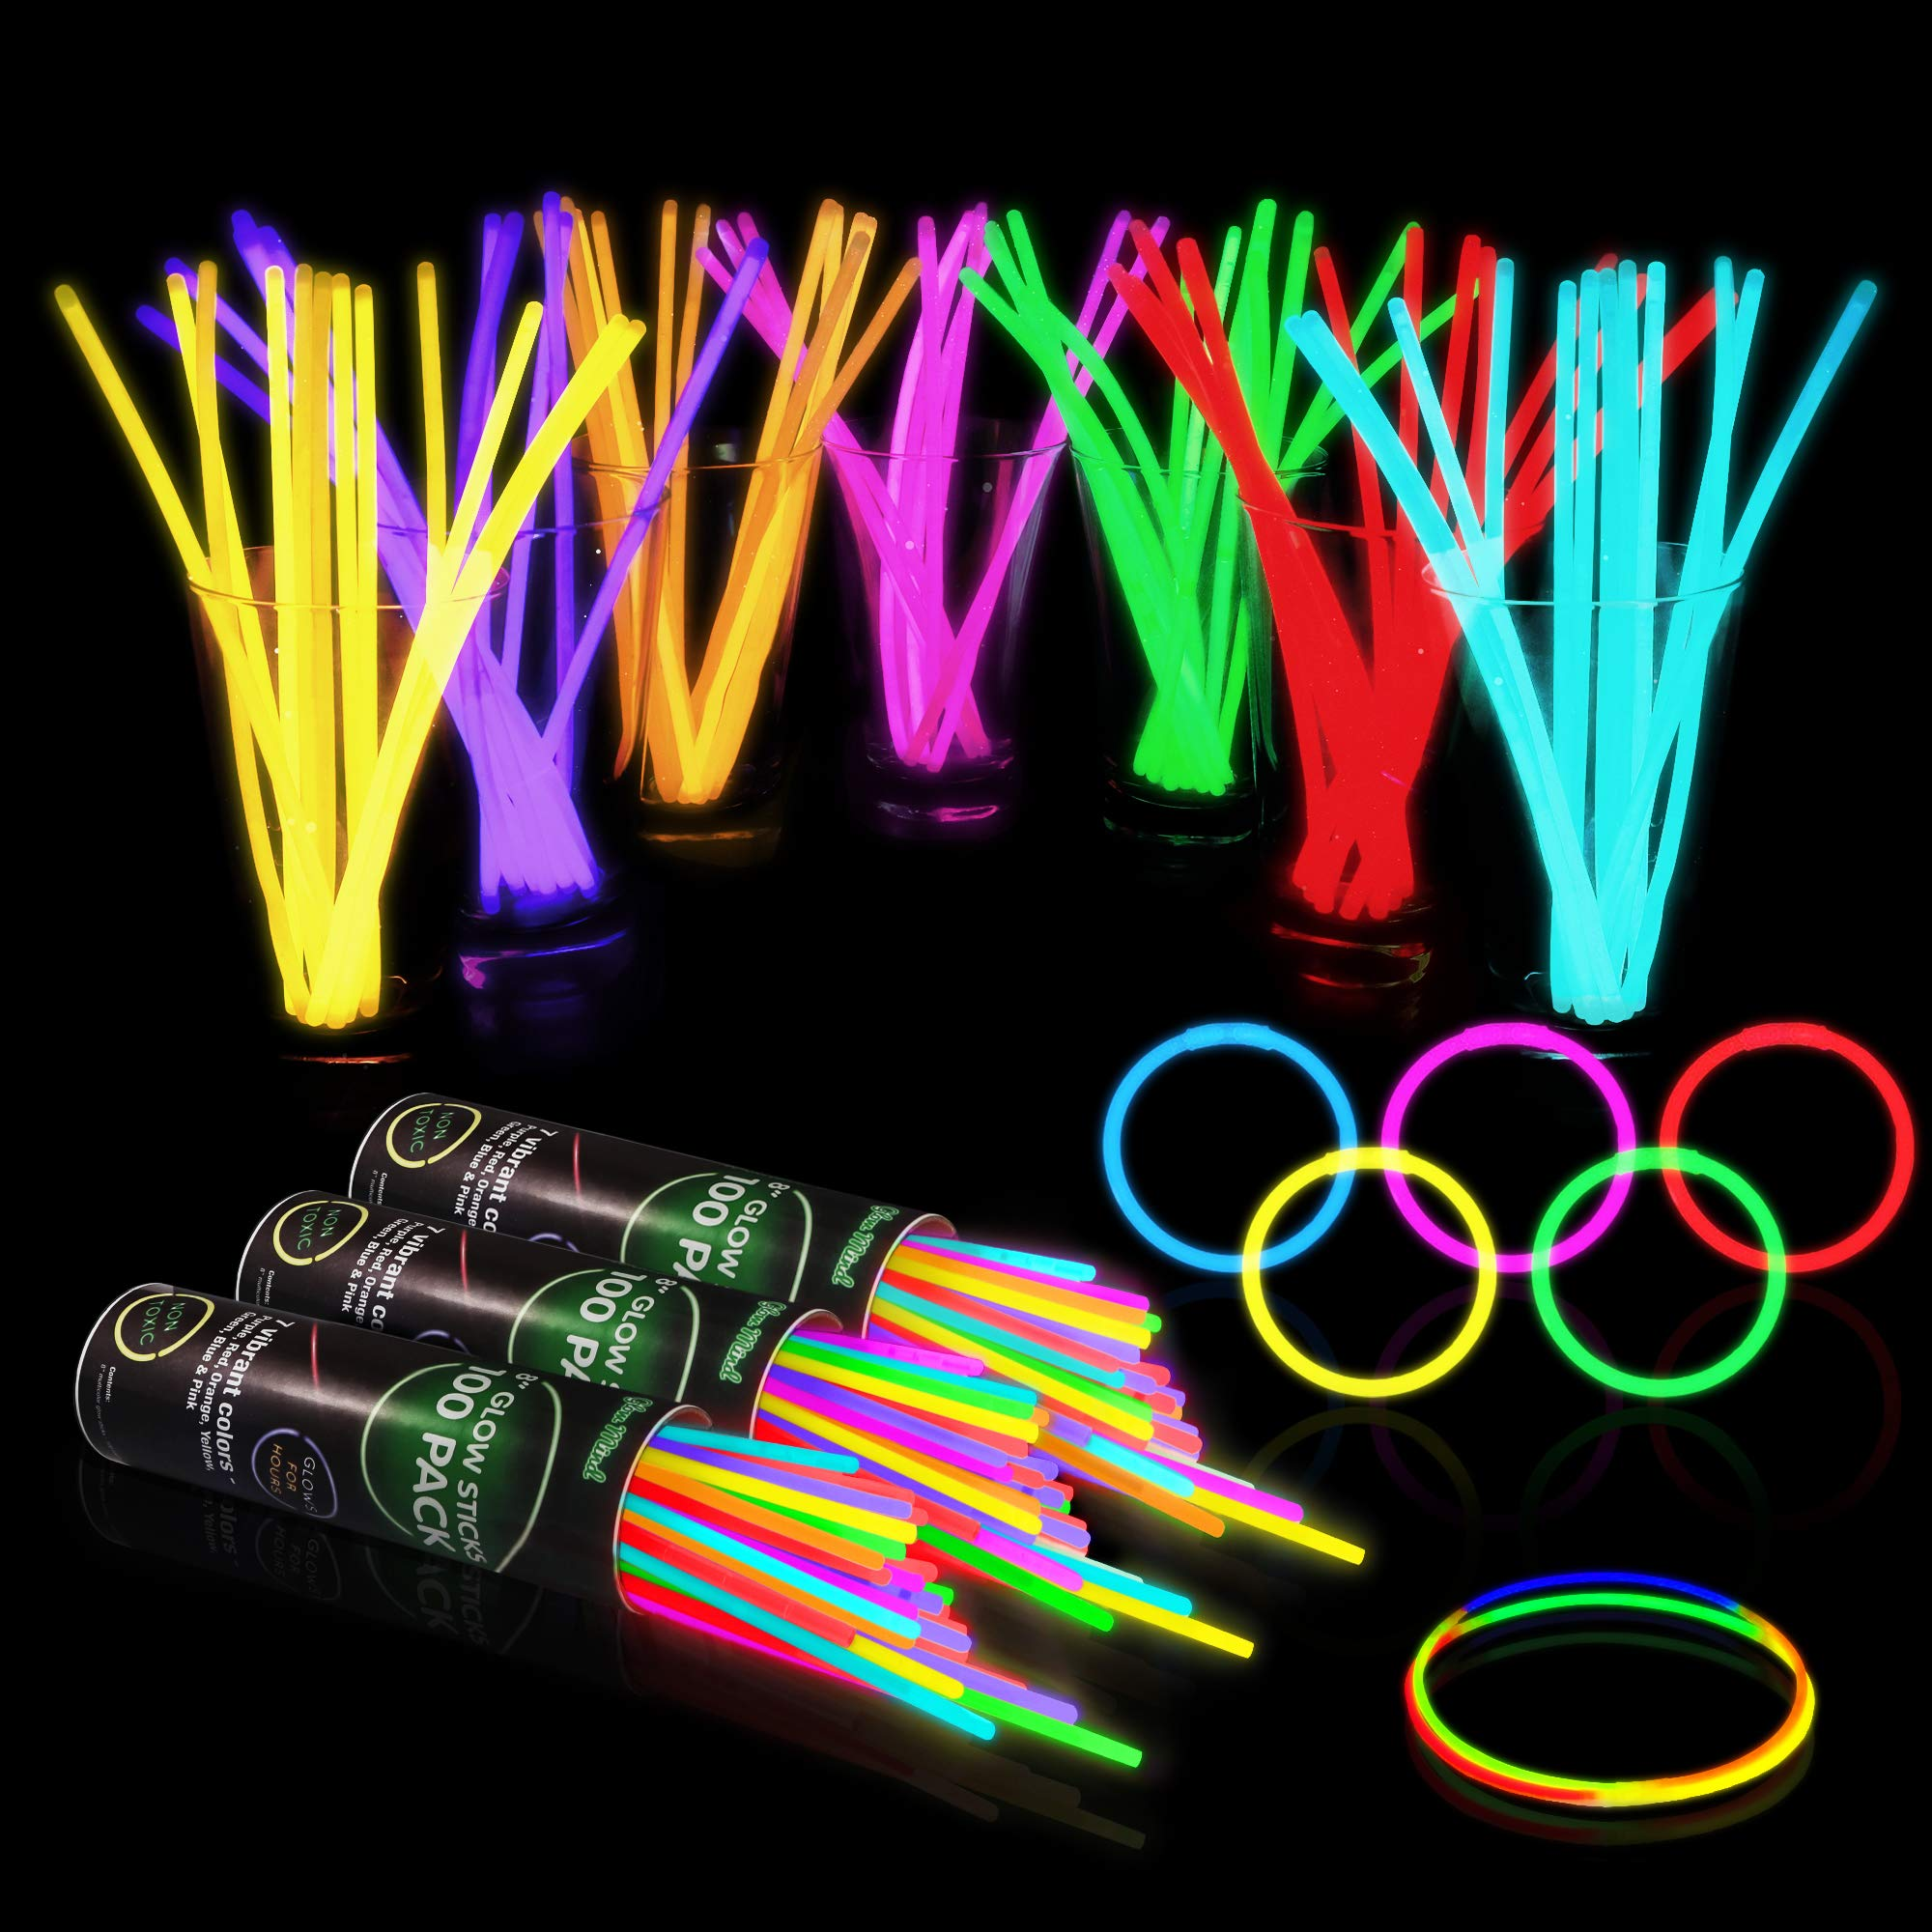 300 Glow Sticks Bulk Party Supplies - Glow in The Dark Fun Party Pack with 8'' Glowsticks and Connectors for Bracelets and Necklaces for Kids and Adults by Glow Mind